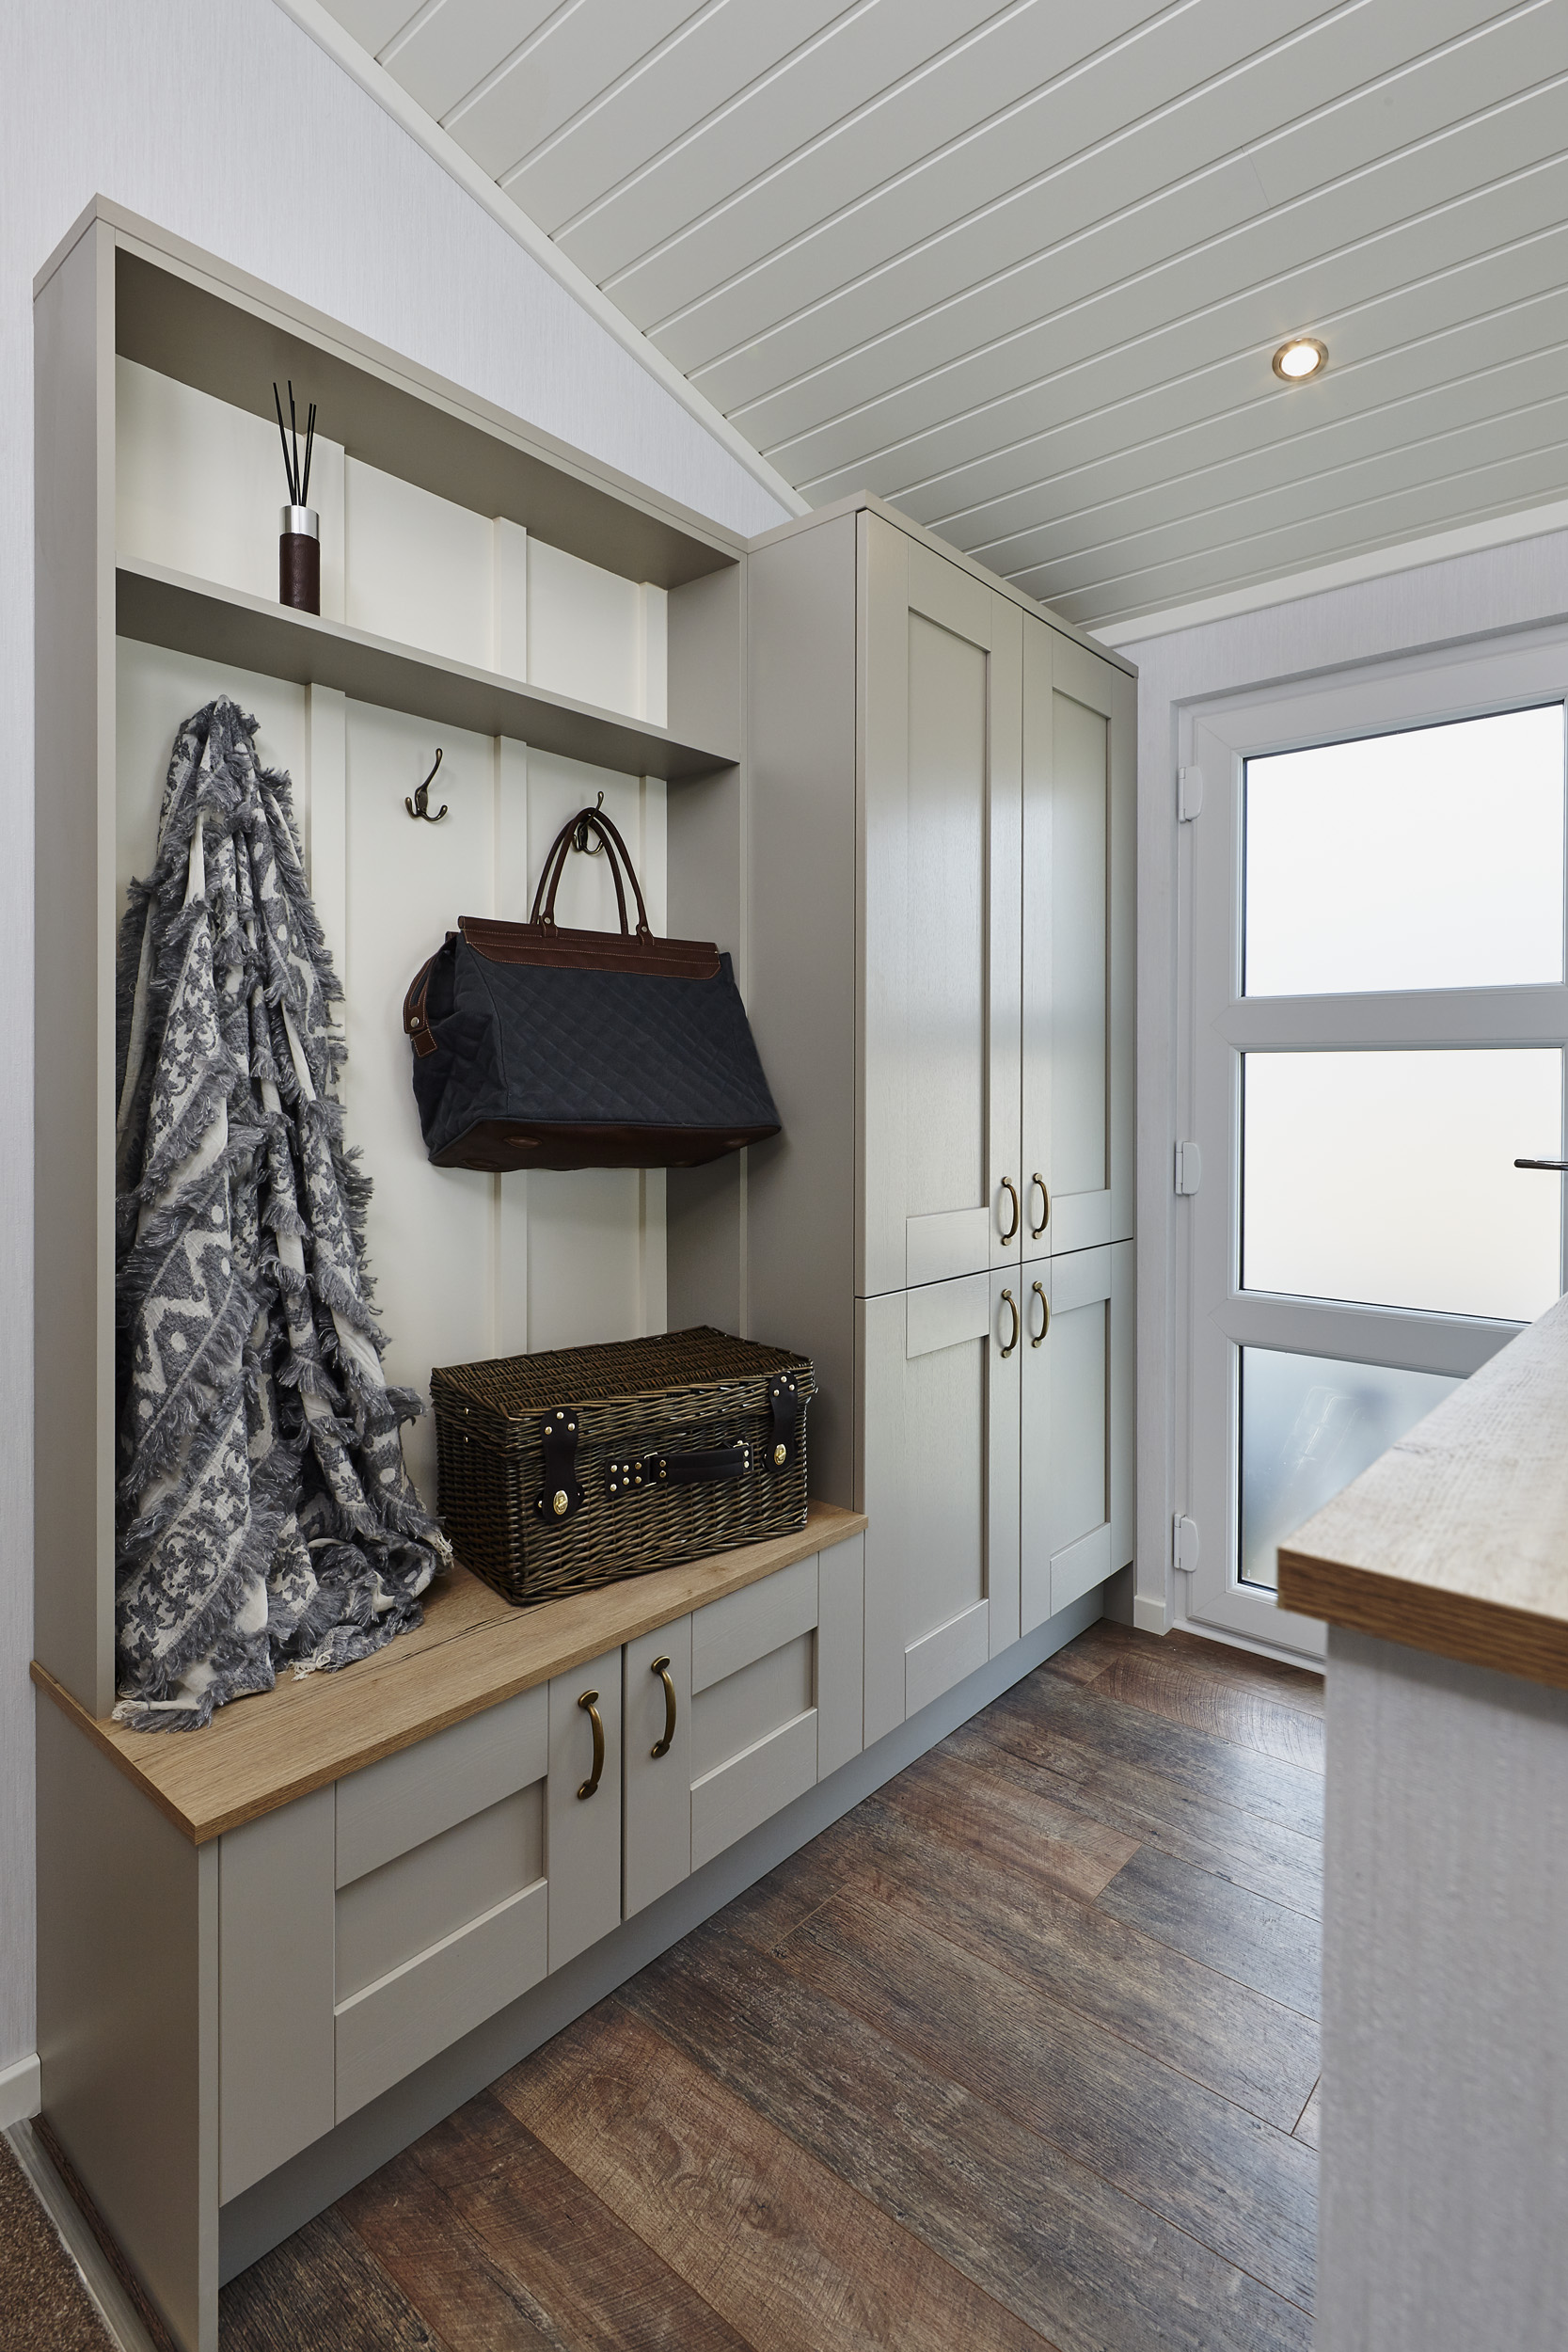 The Muskoka lodge, Entrance view with cloakroom & storage